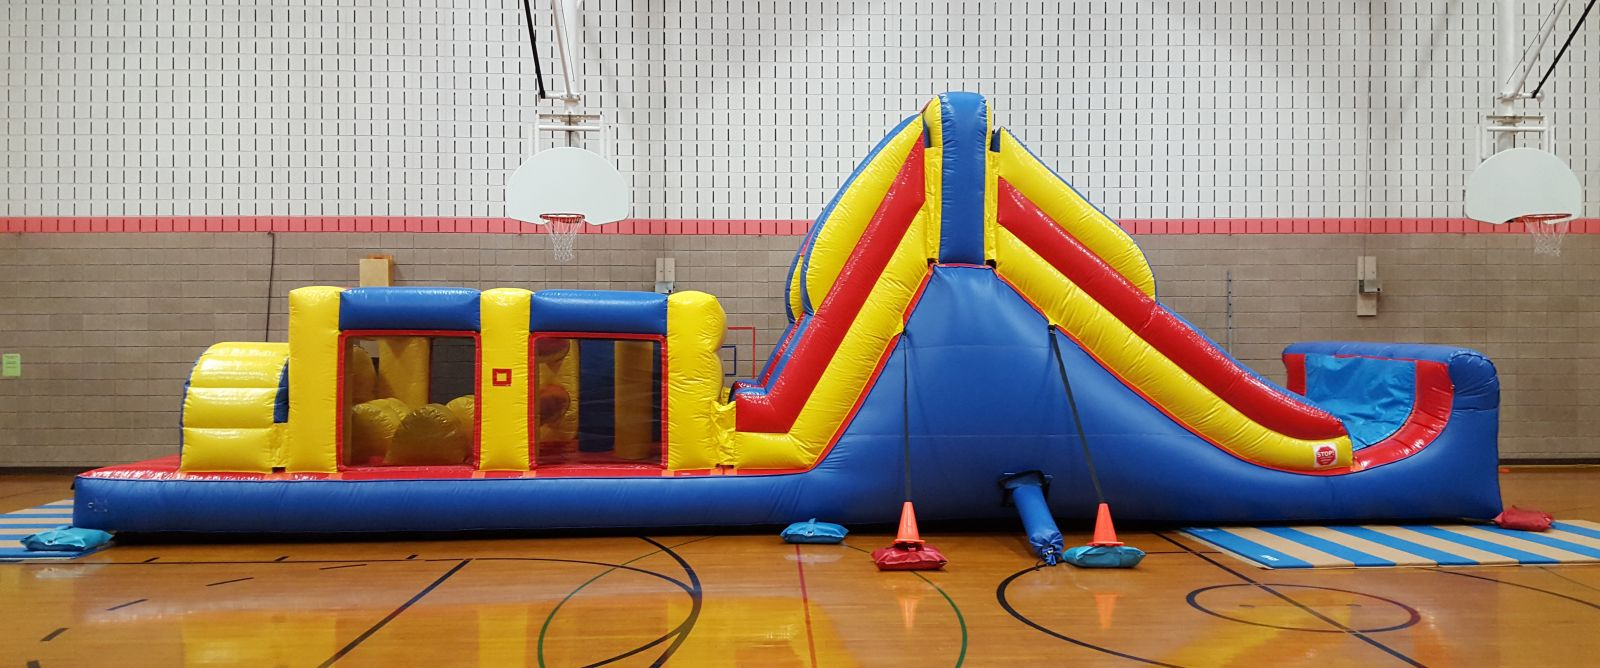 Side view of Obstacle Course